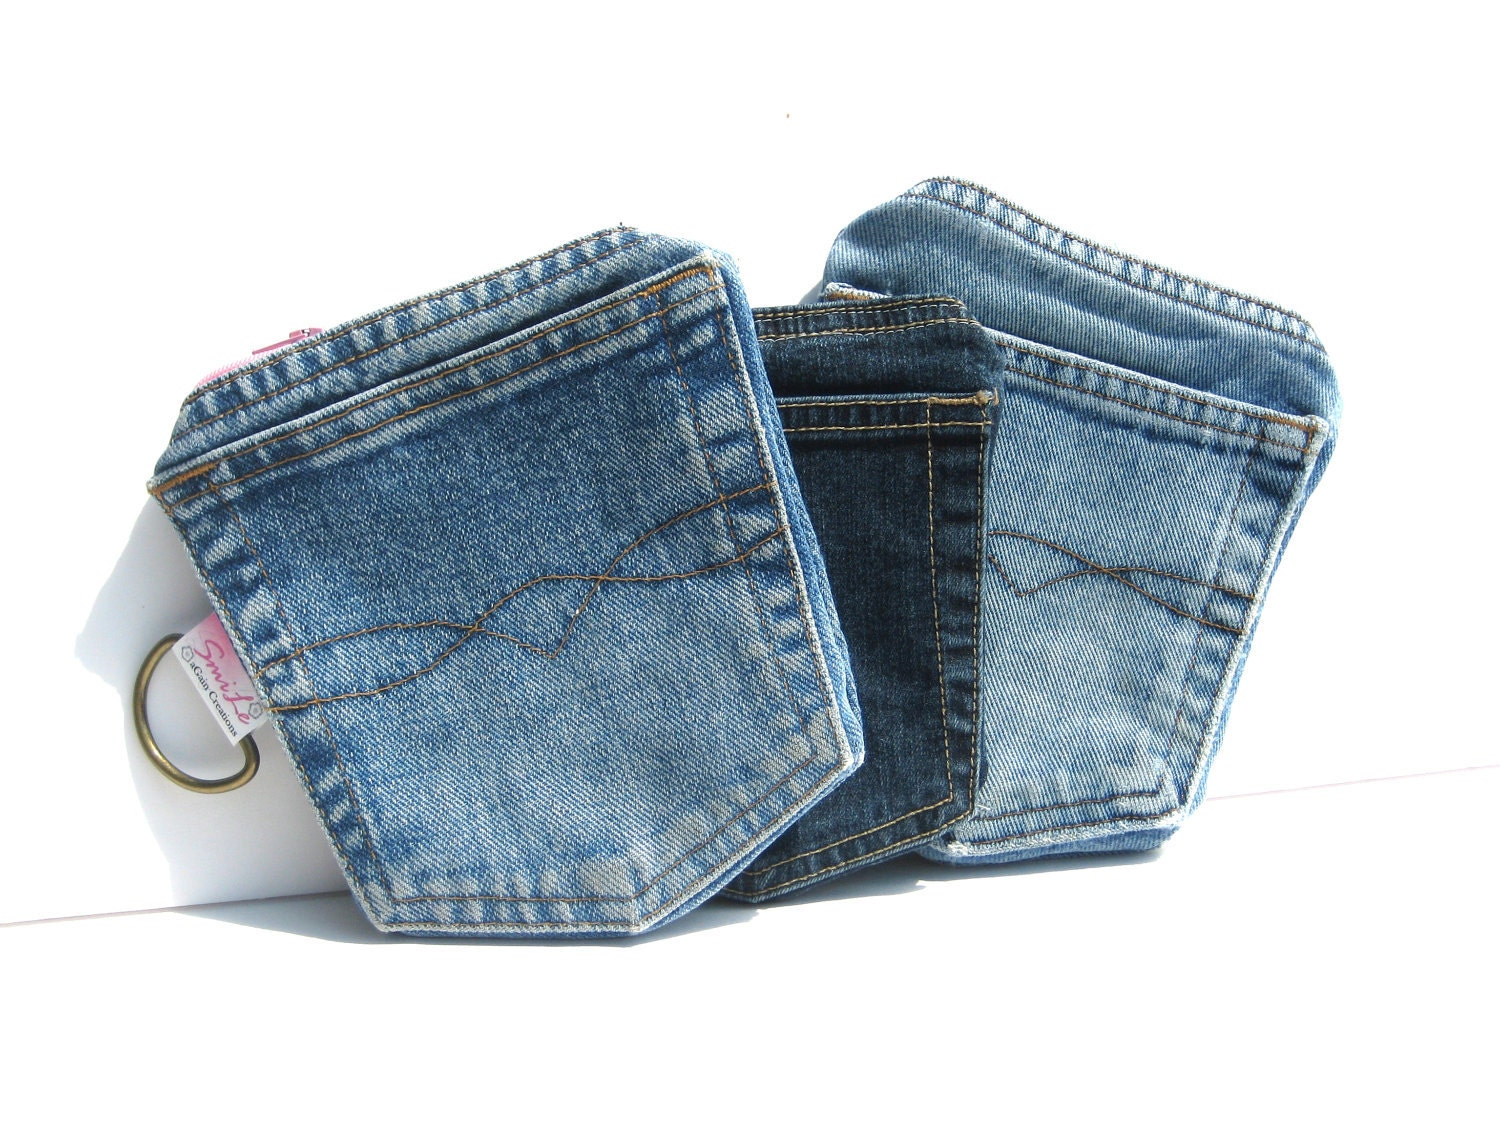 Denim Pockets Wallet with zipper for iPhone. MADE TO ORDER Men